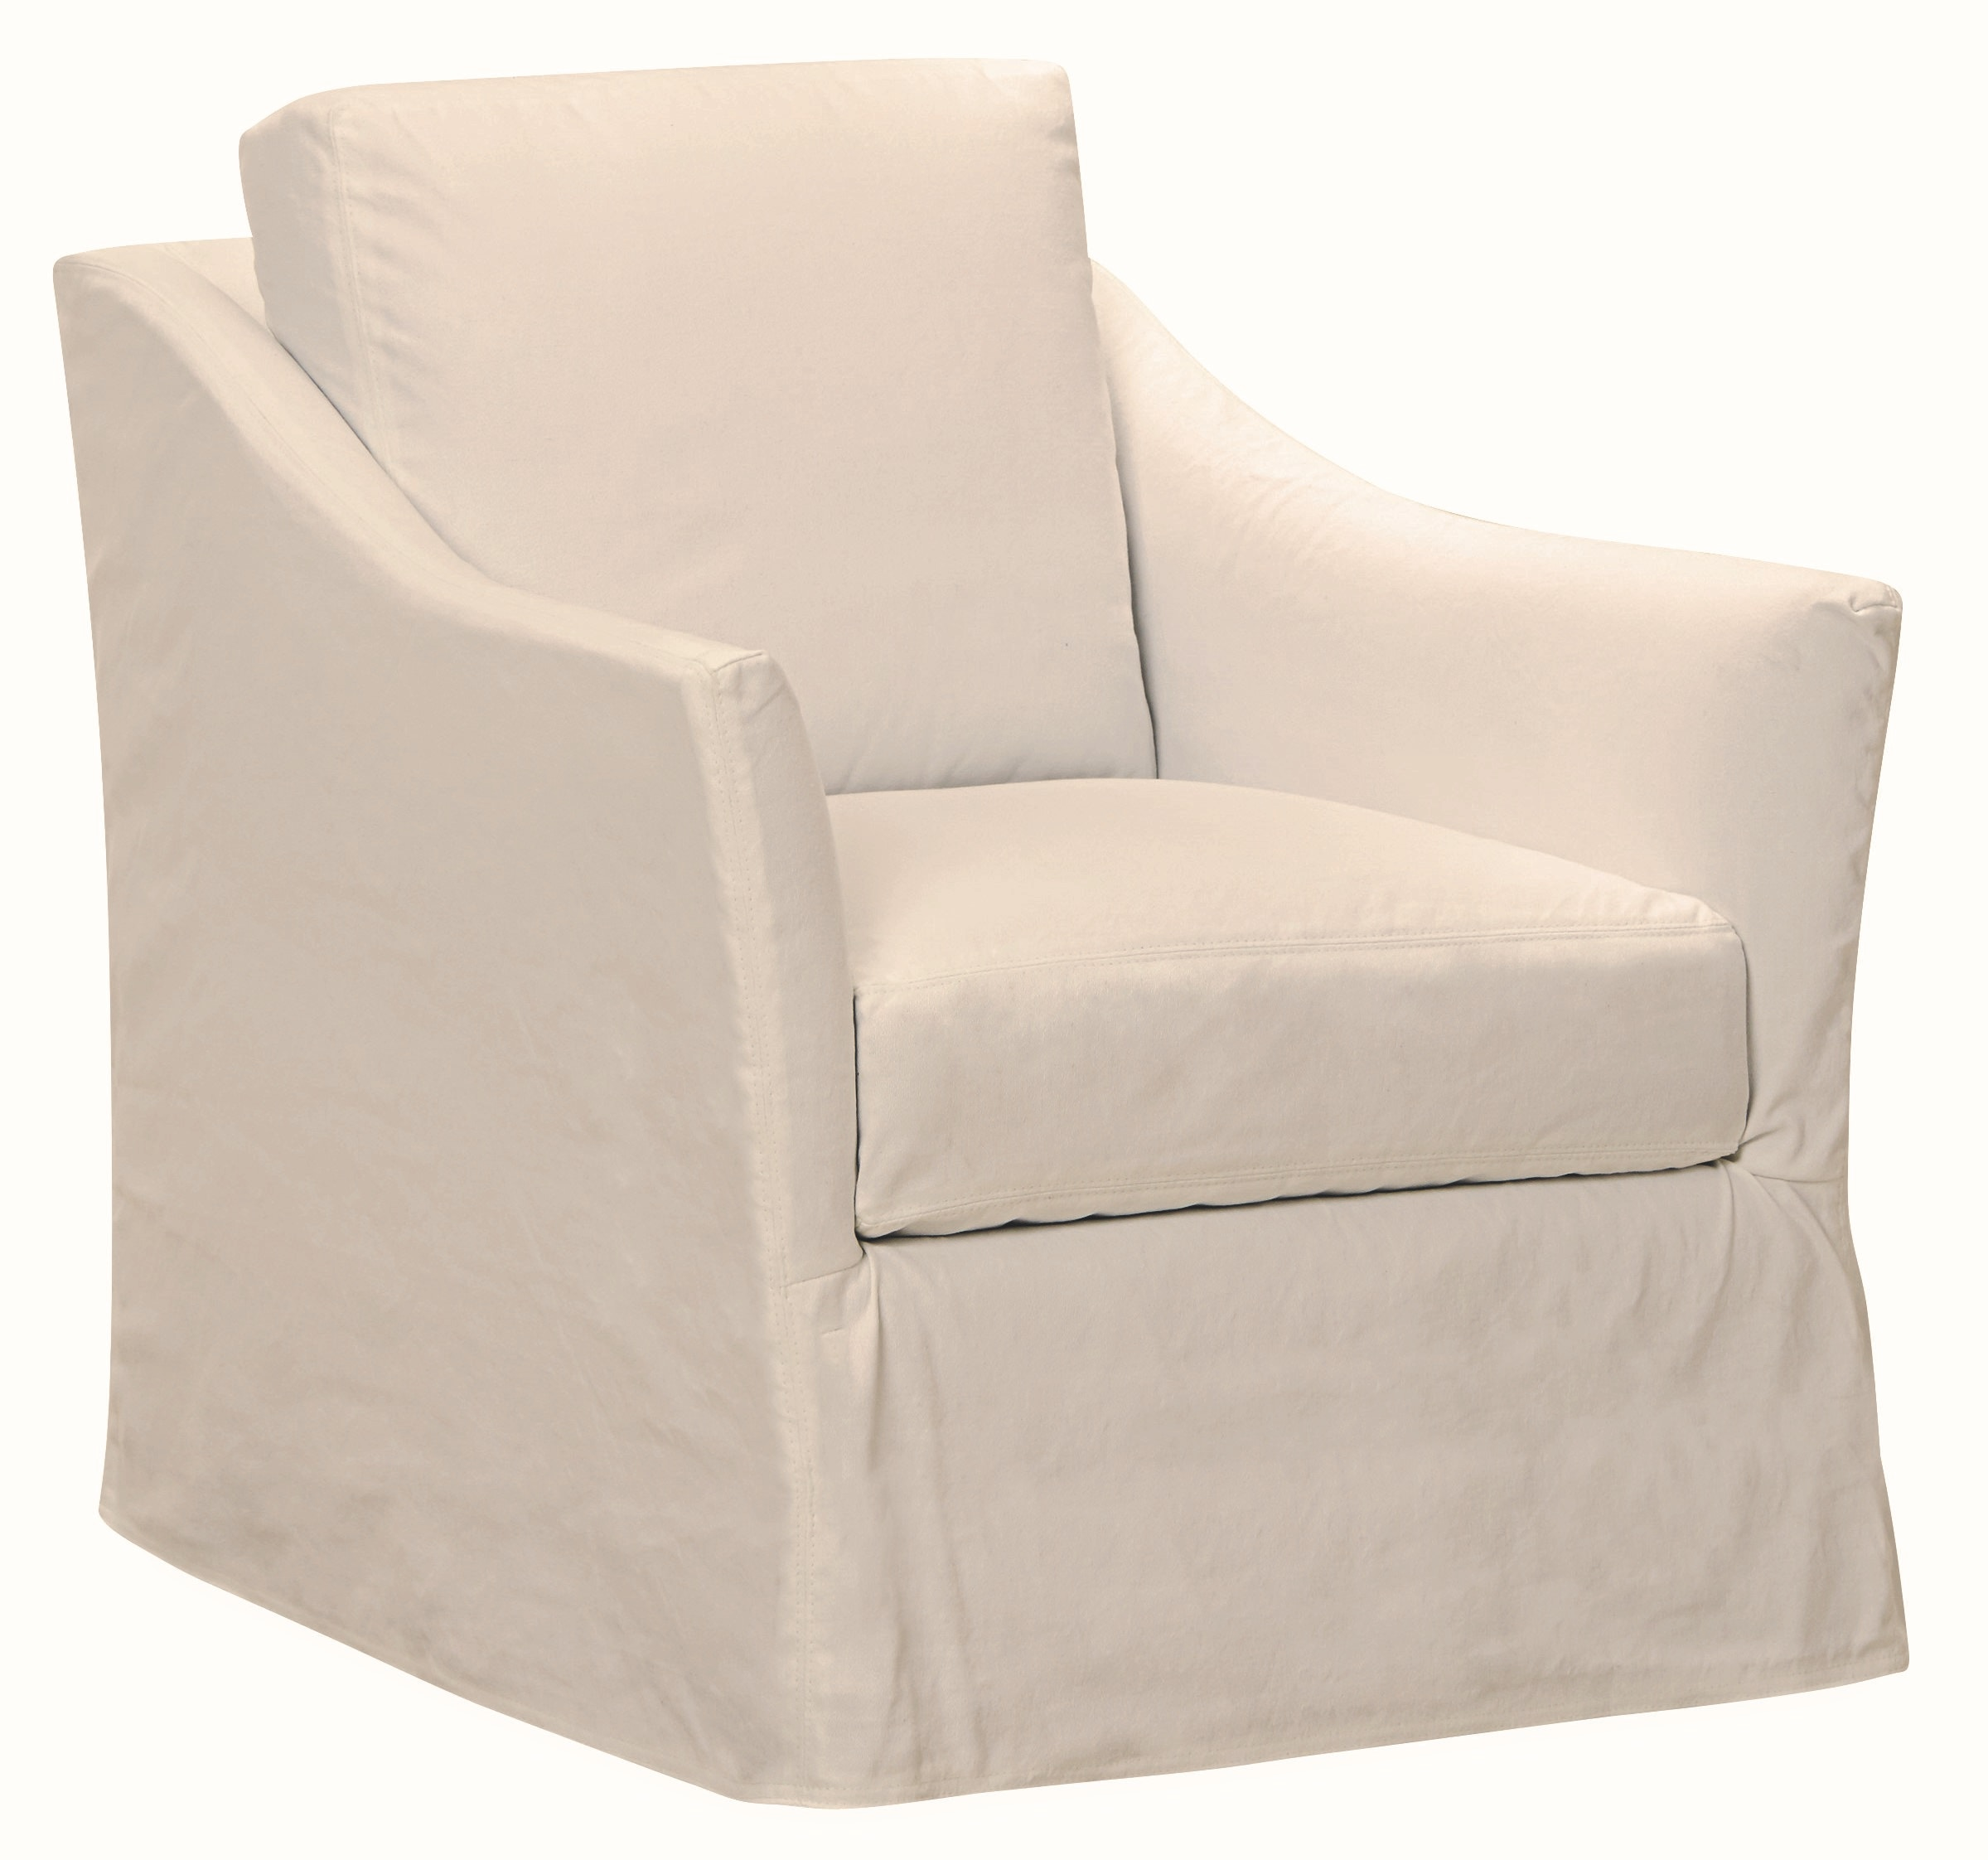 Lee Industries Slipcovered Swivel Chair C3513 01SW